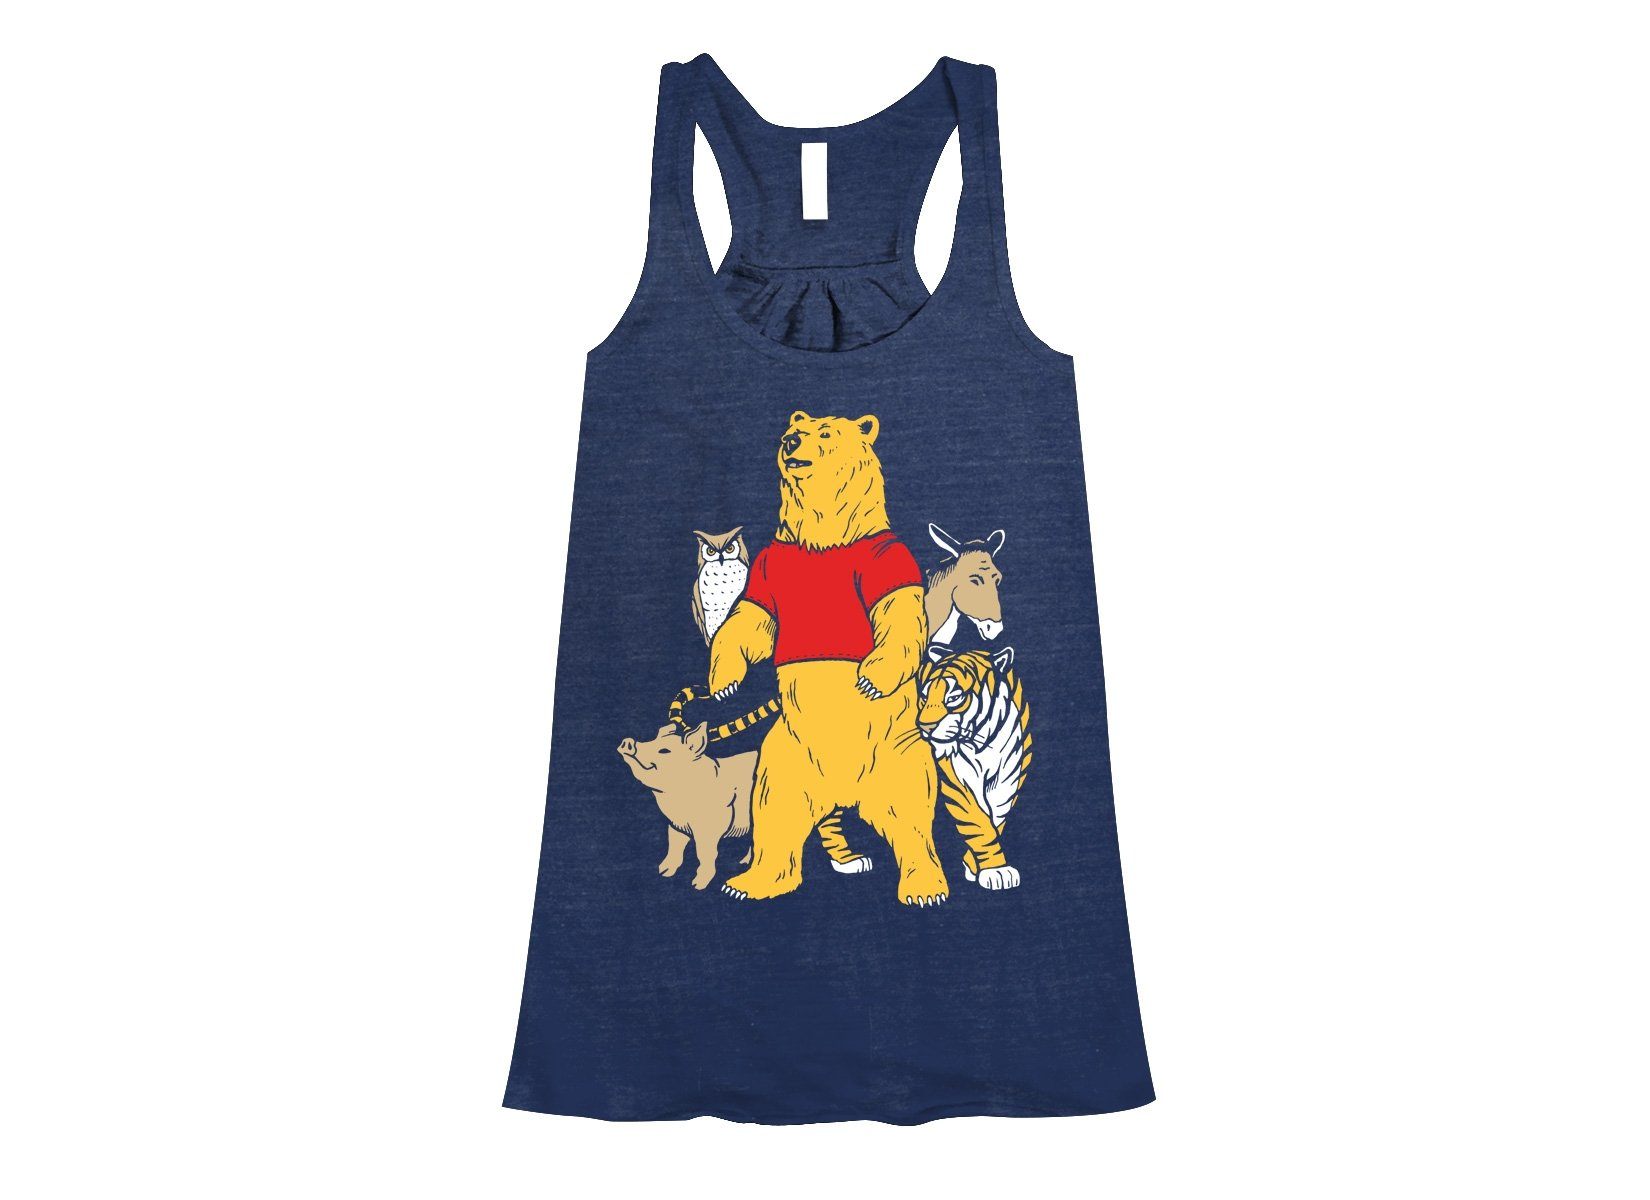 Bear And Friends on Womens Tanks T-Shirt